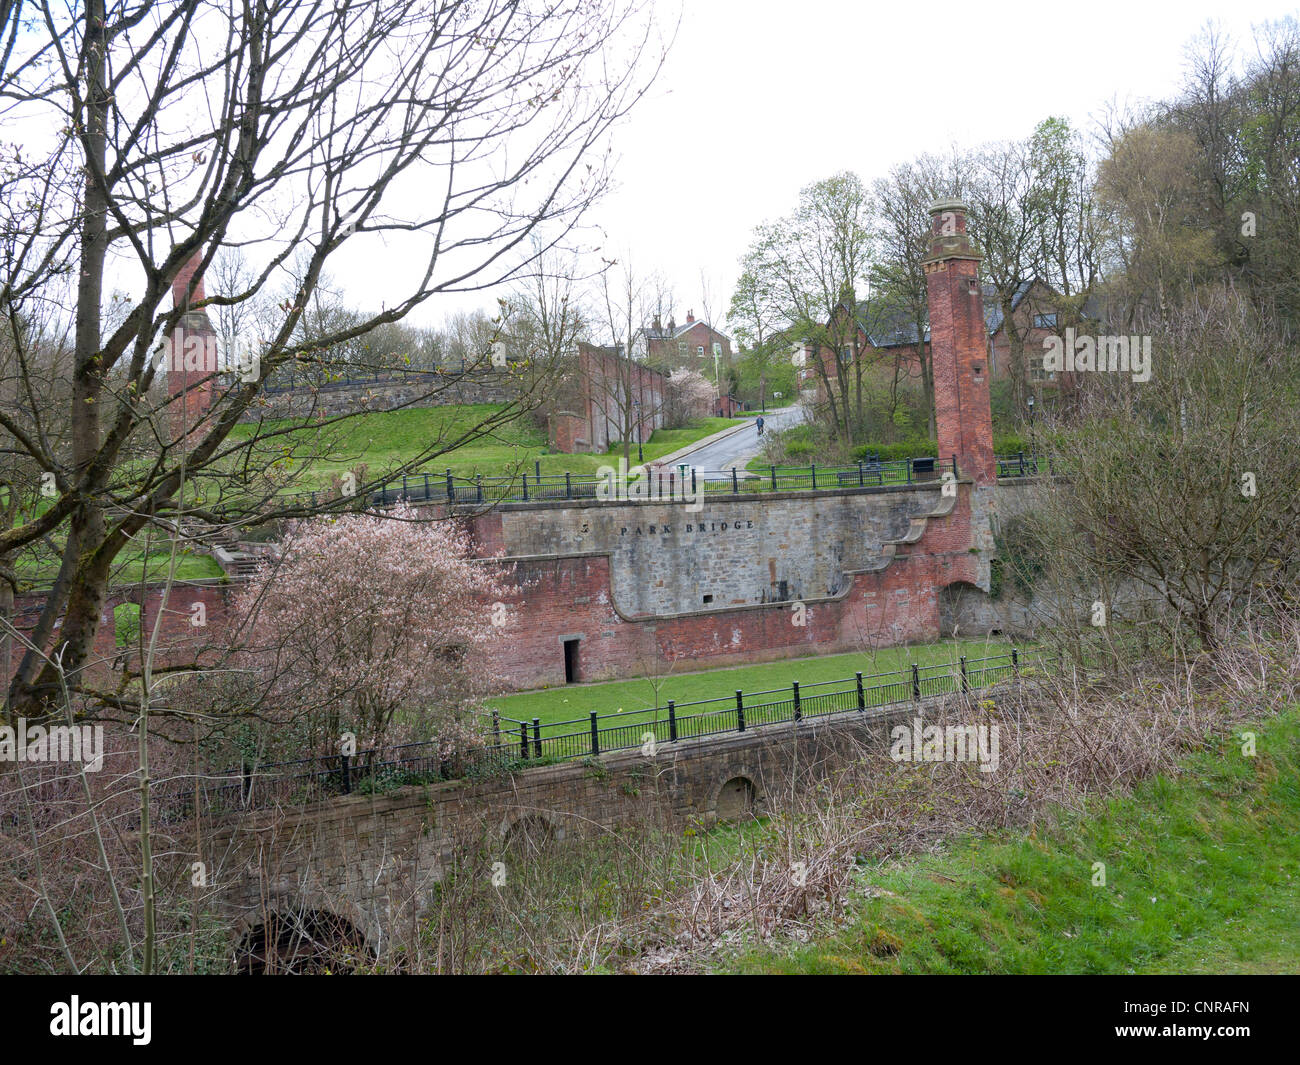 Remains of Park Bridge Ironworks, Ashton-under-Lyne, Lancashire, England, UK. Stock Photo